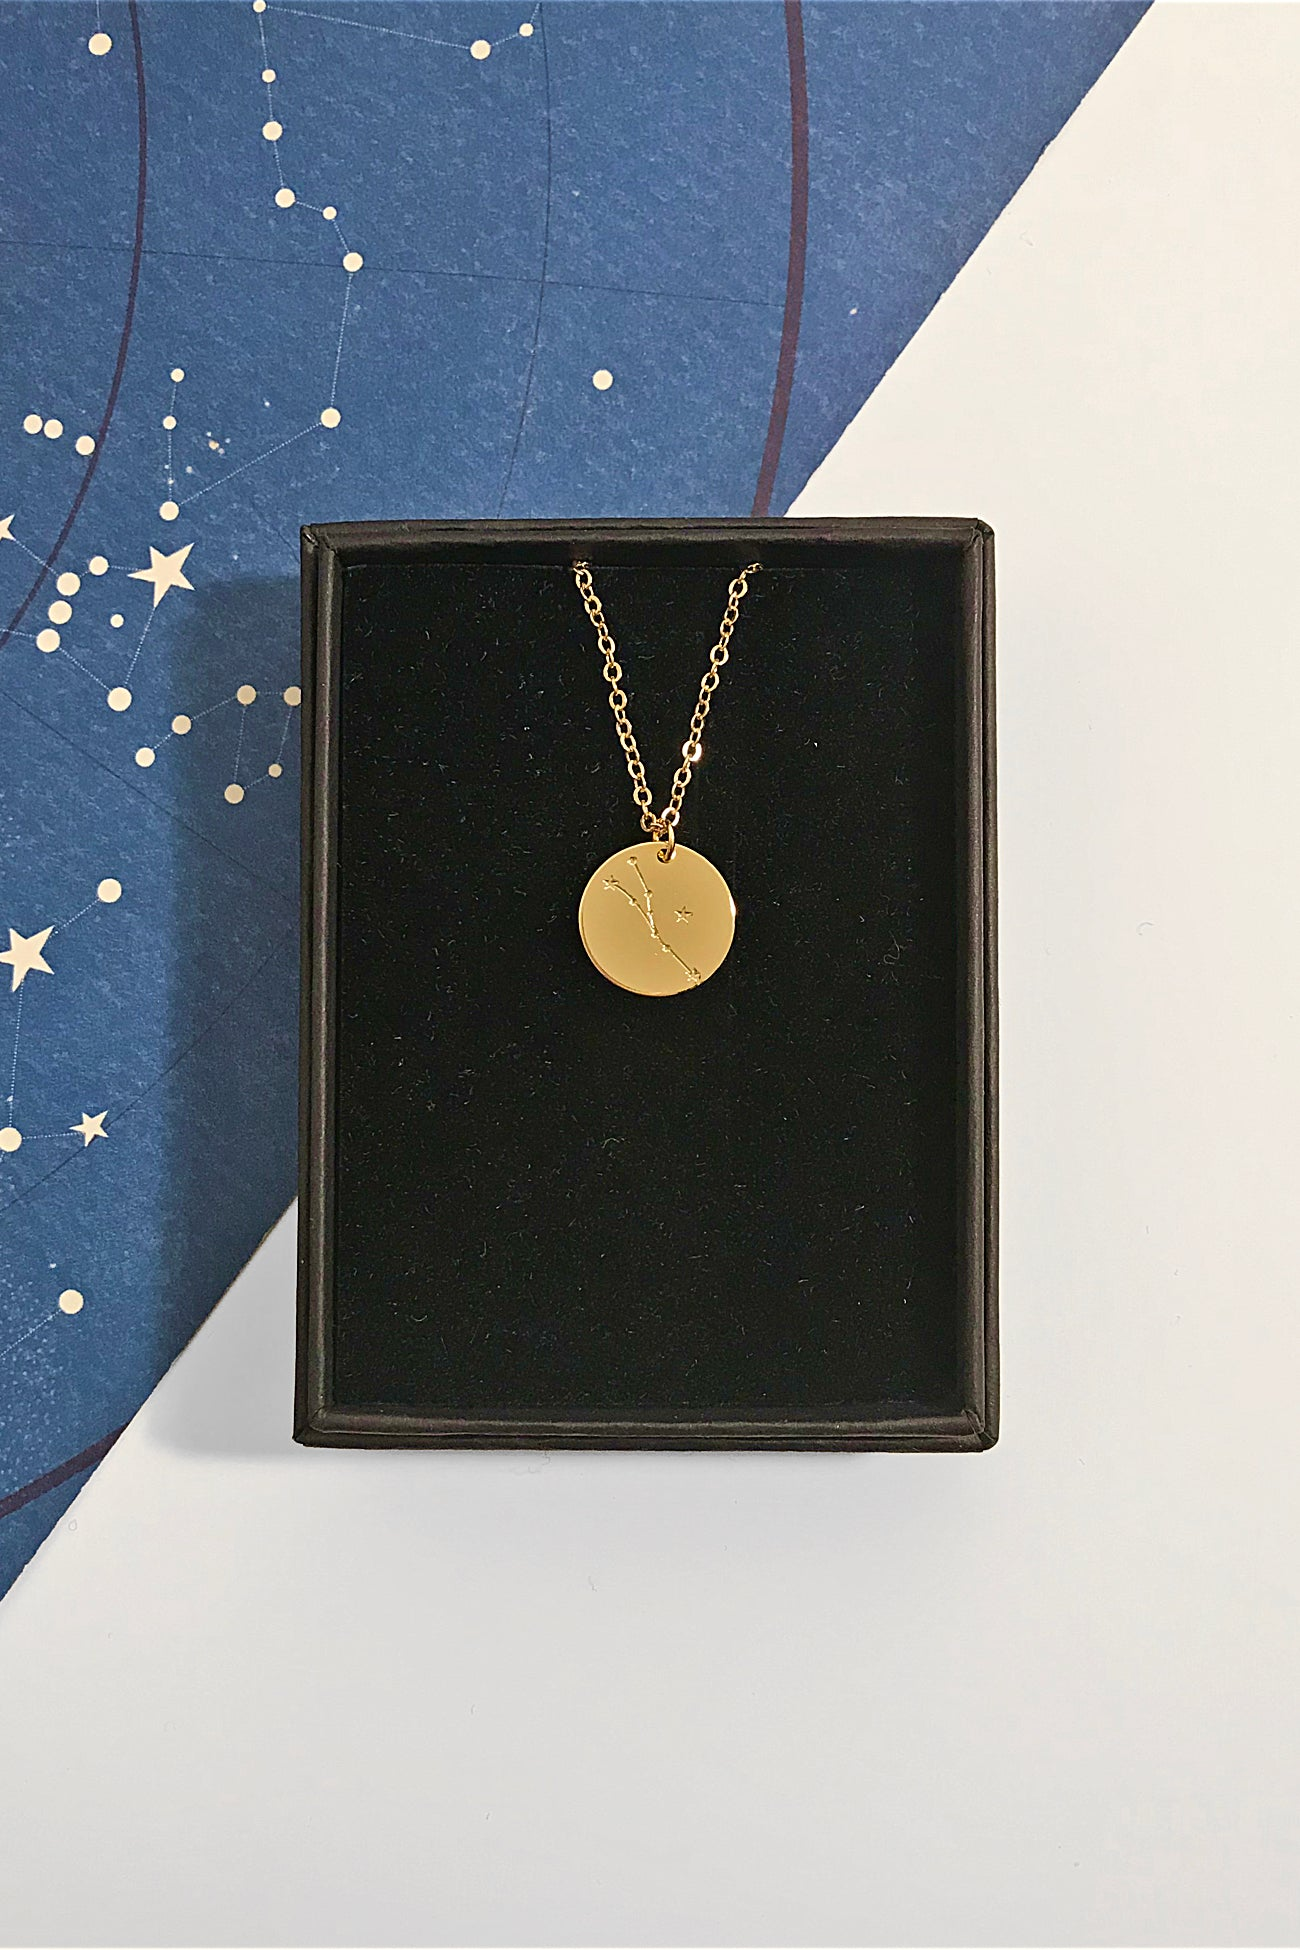 Taurus constellation disc necklace